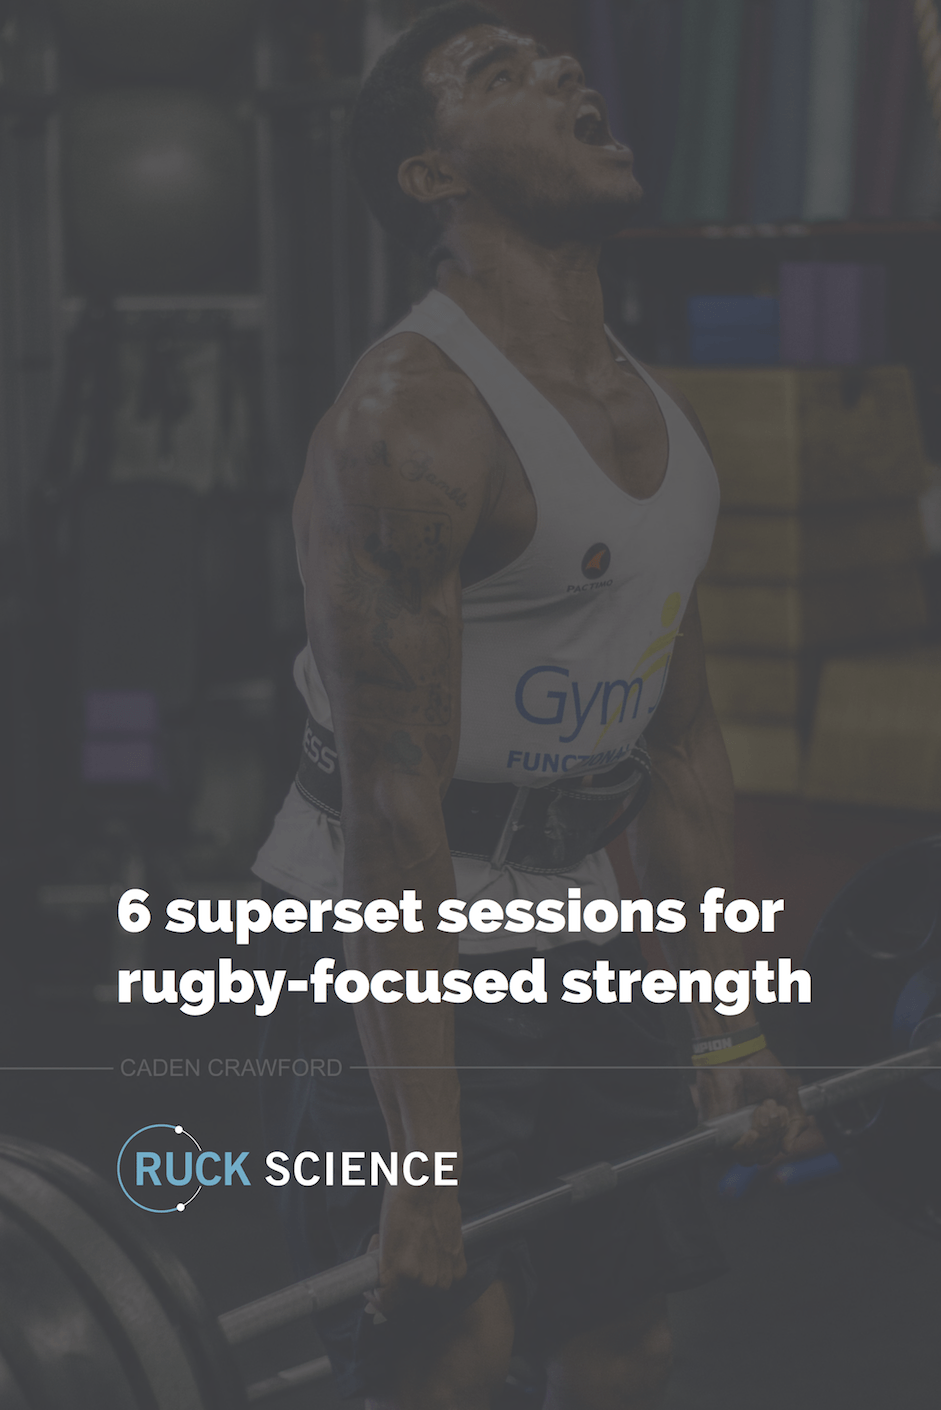 6 superset sessions for rugby-focused strength